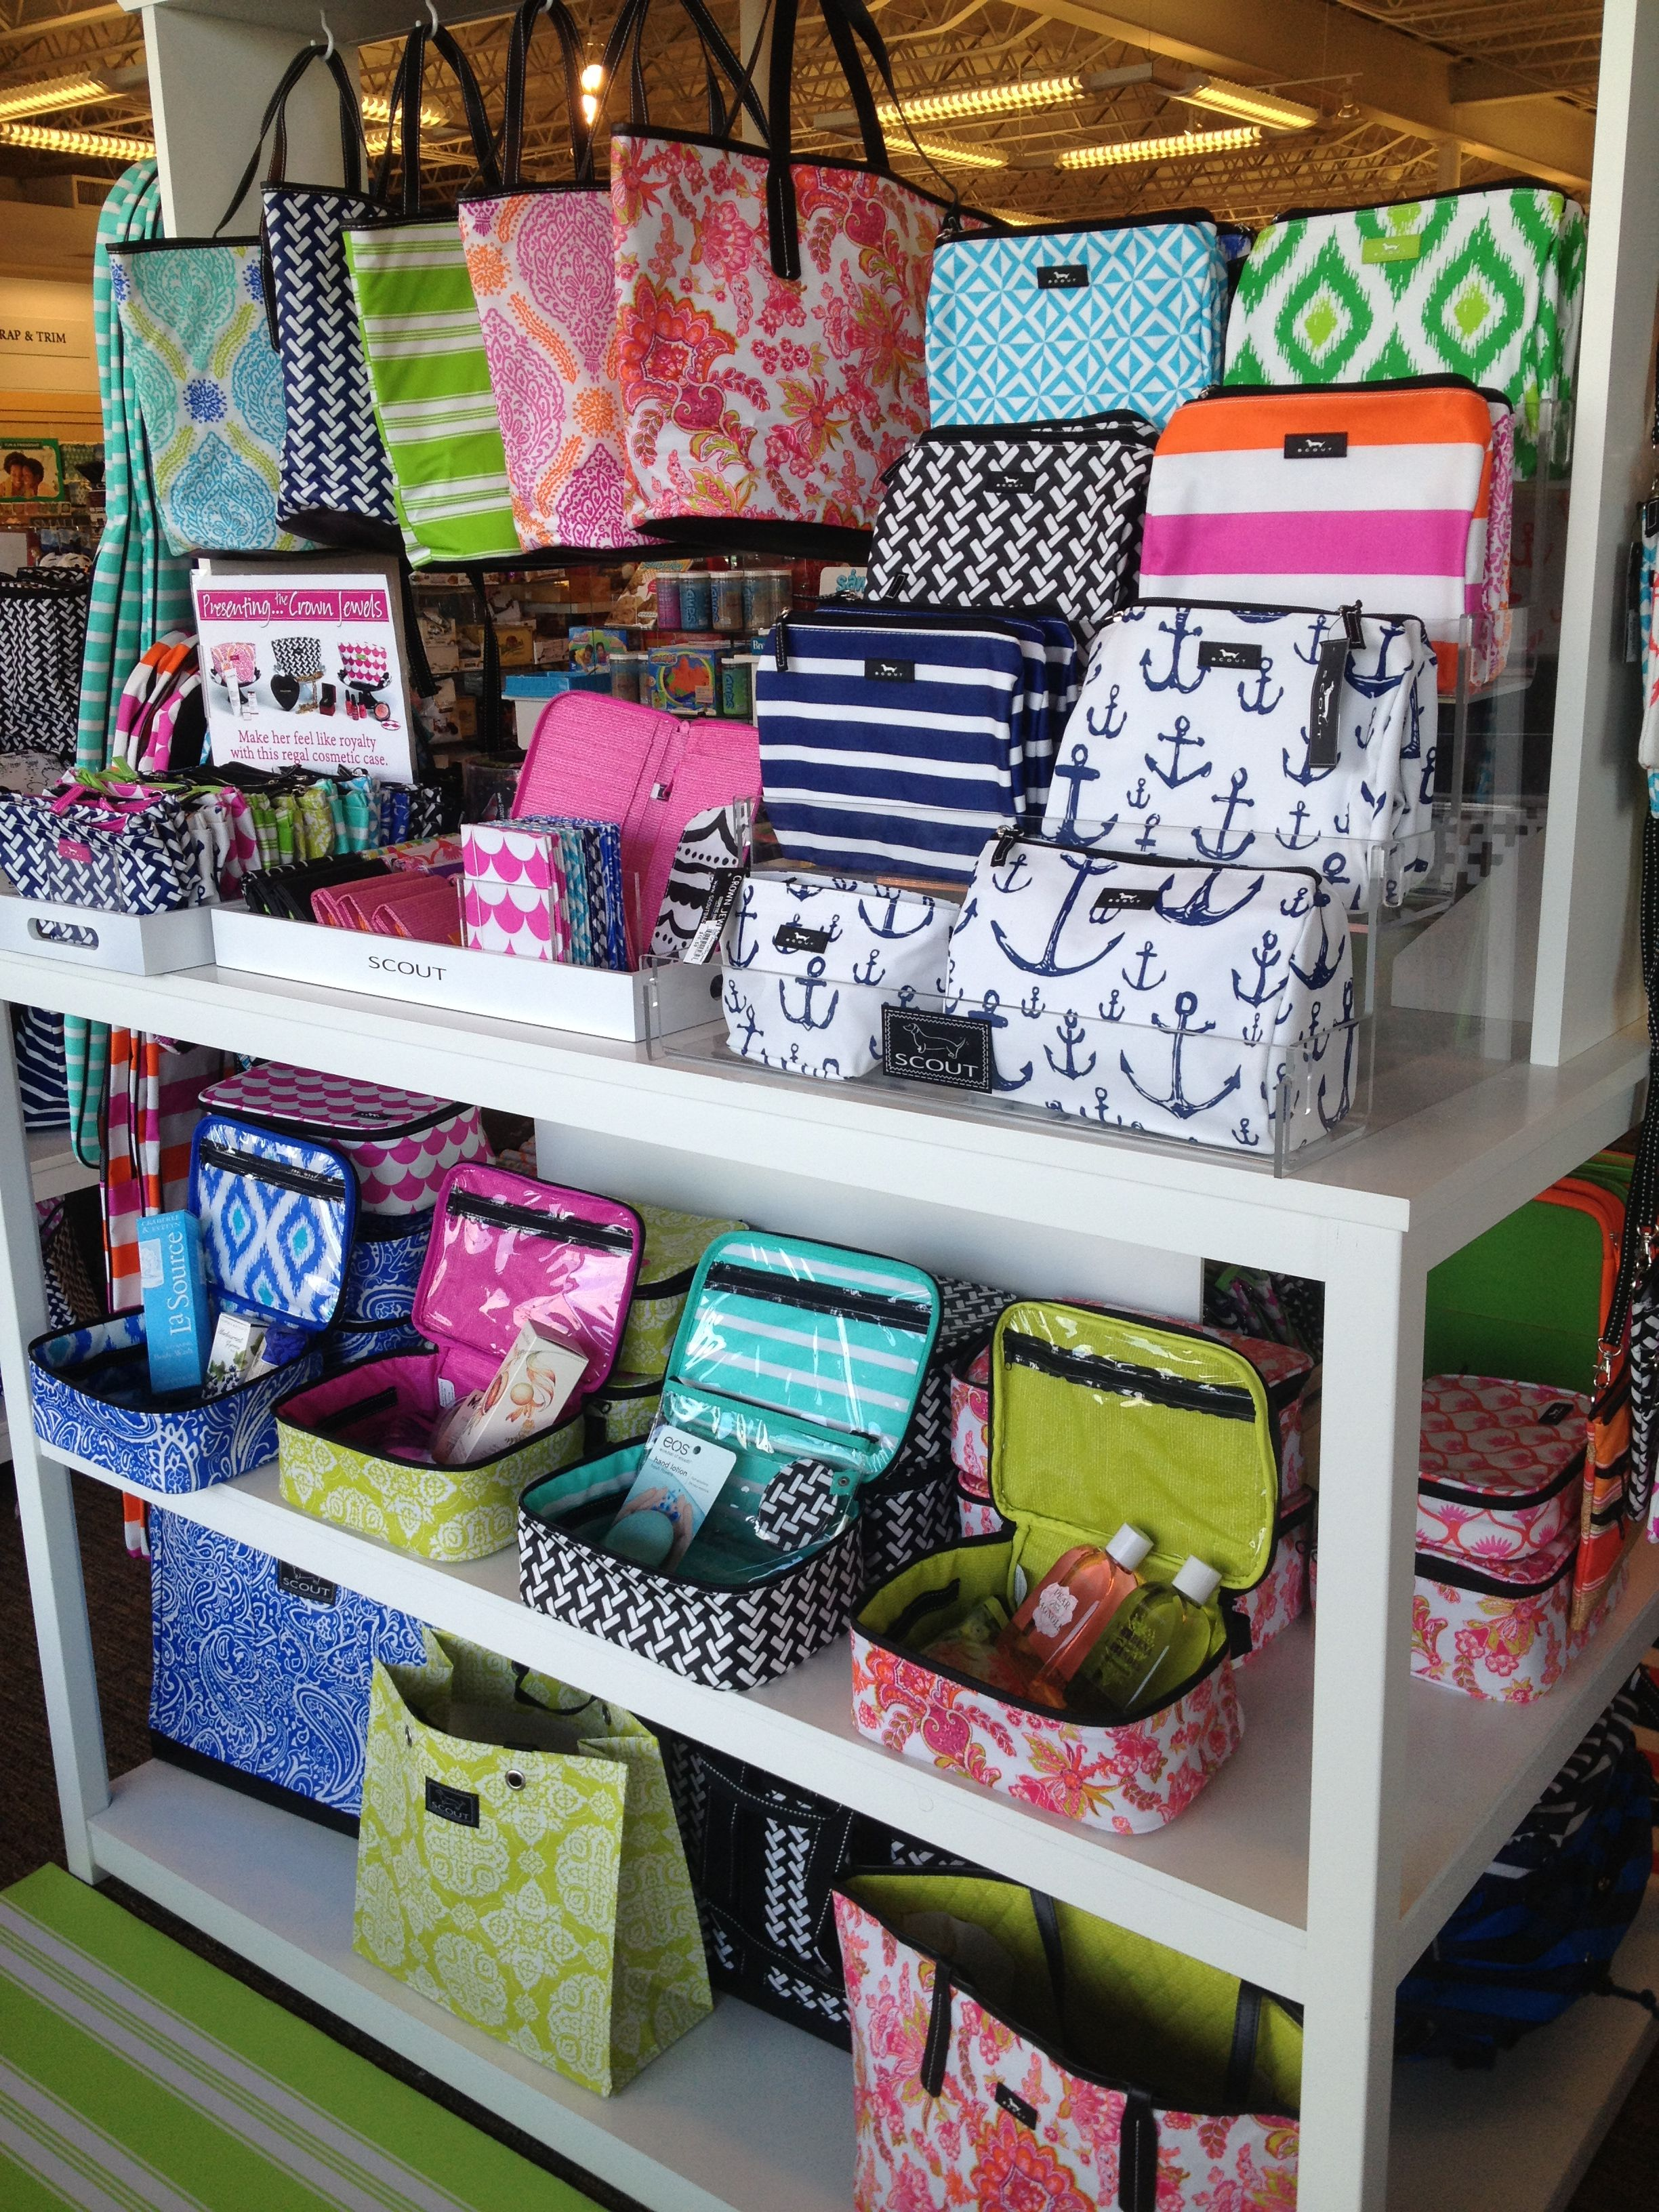 Cross merchandise with other products in your store to